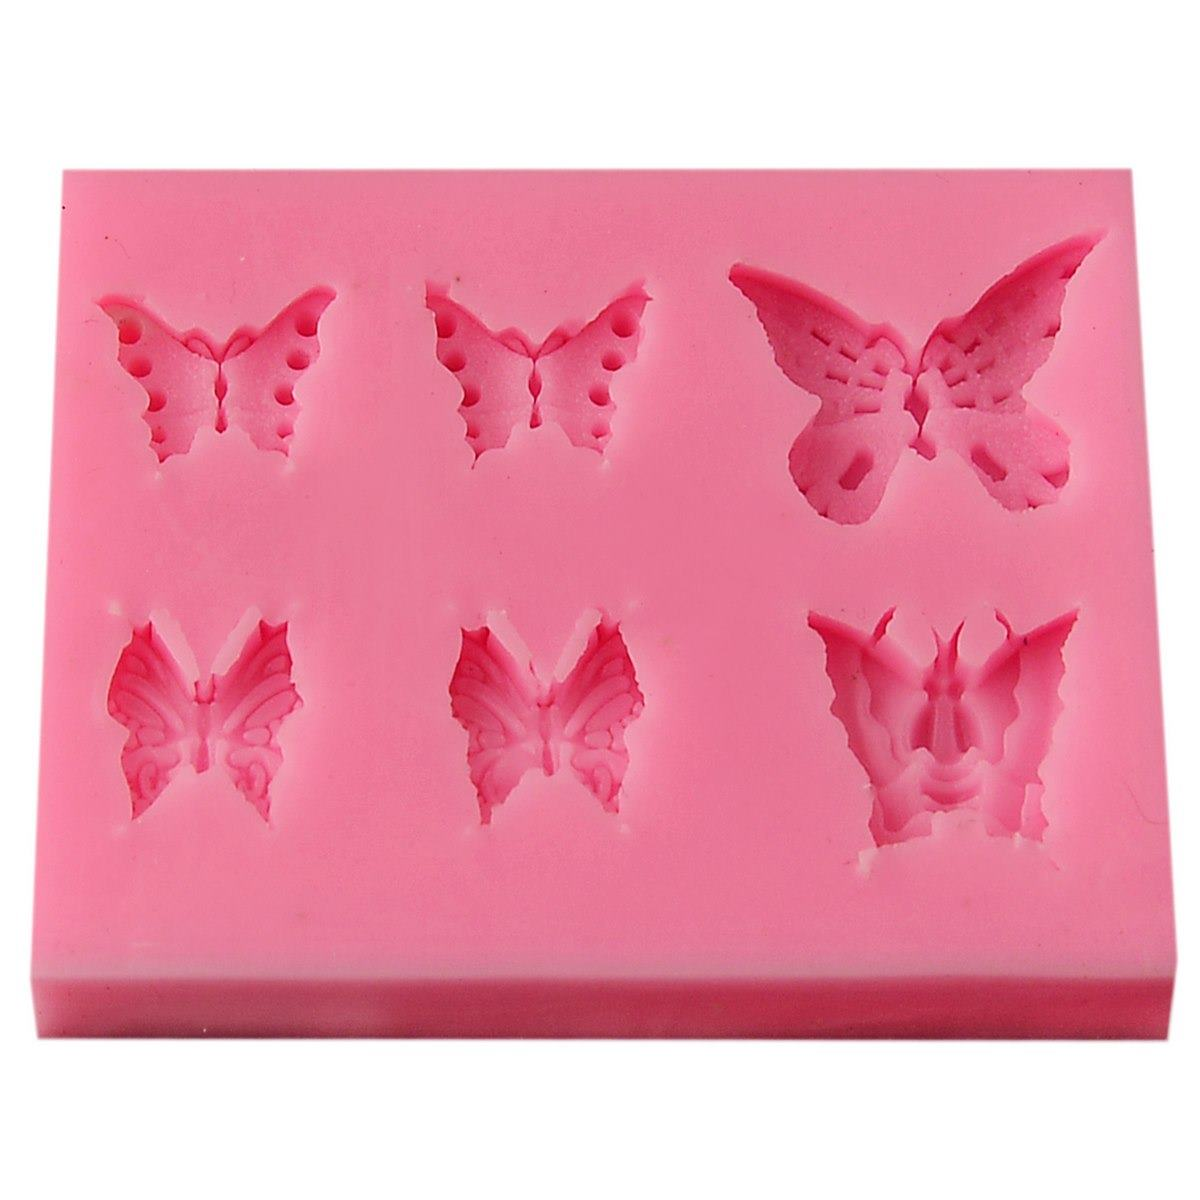 Resin Silicone Mould - Butterfly (7.5x5.5x0.7 cm)